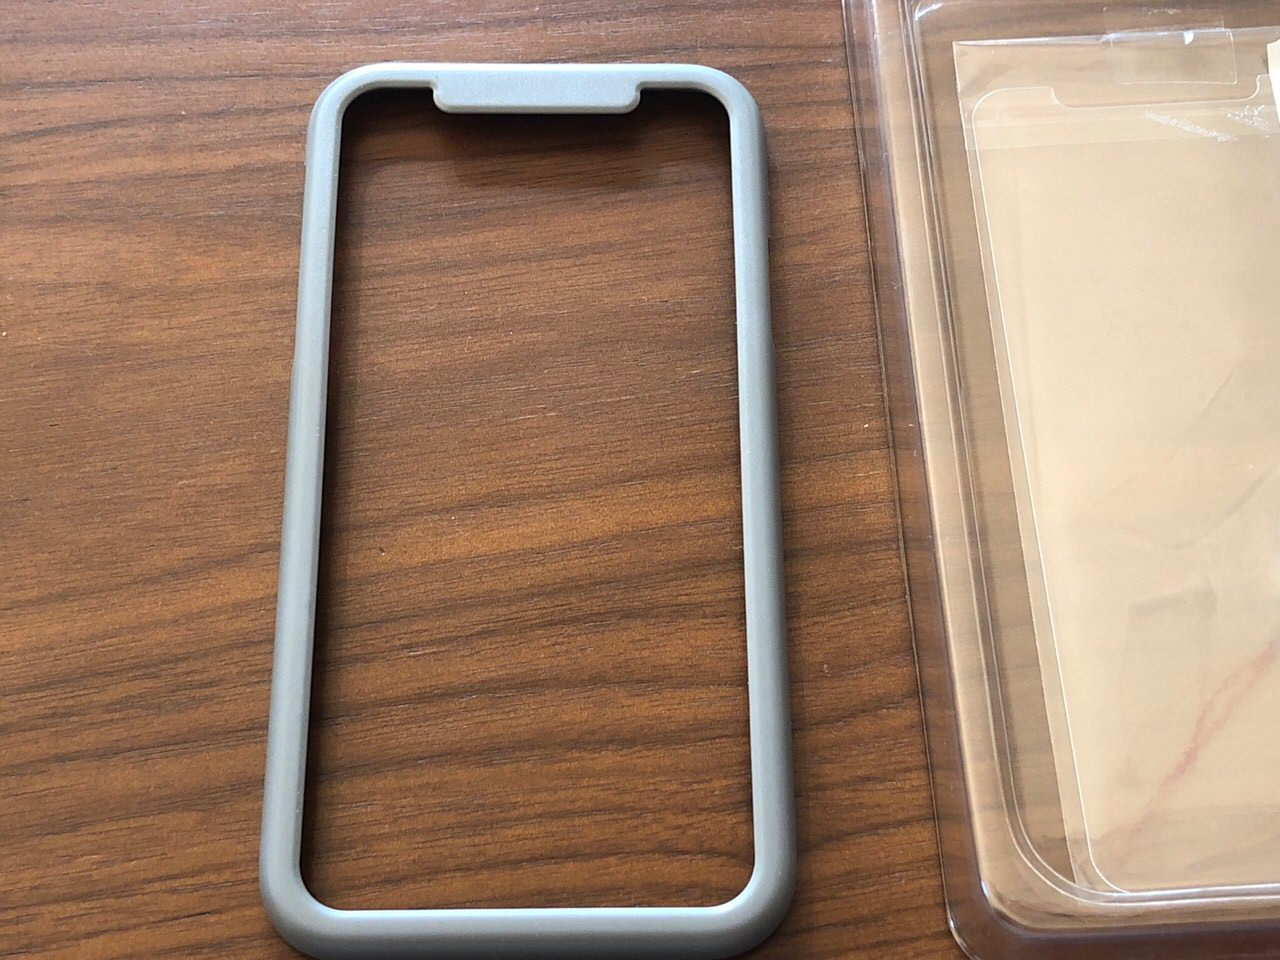 Iphone x firstimpresion 0603